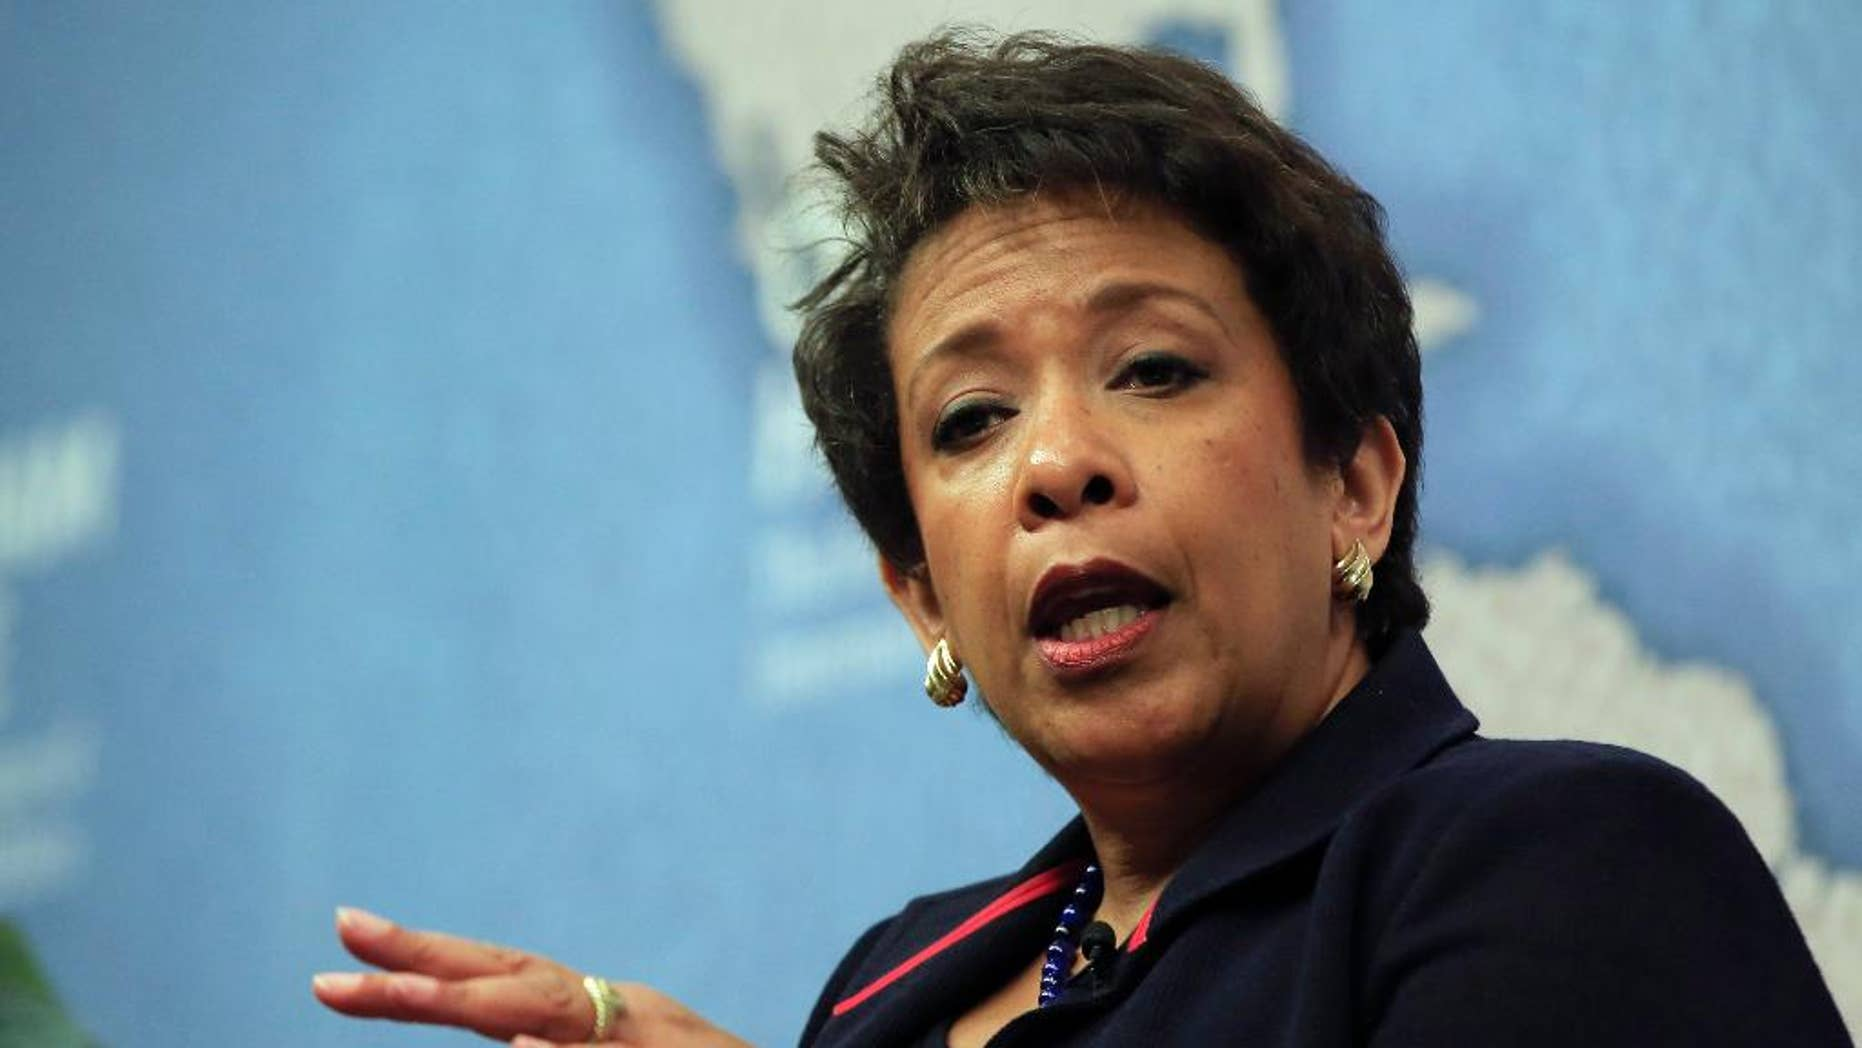 United States Attorney General Loretta Lynch gestures as she answers a question from the audience after speaking at Chatham House, The Royal Institute for International Affairs, in London, Wednesday, Dec. 9, 2015. (AP Photo/Alastair Grant)